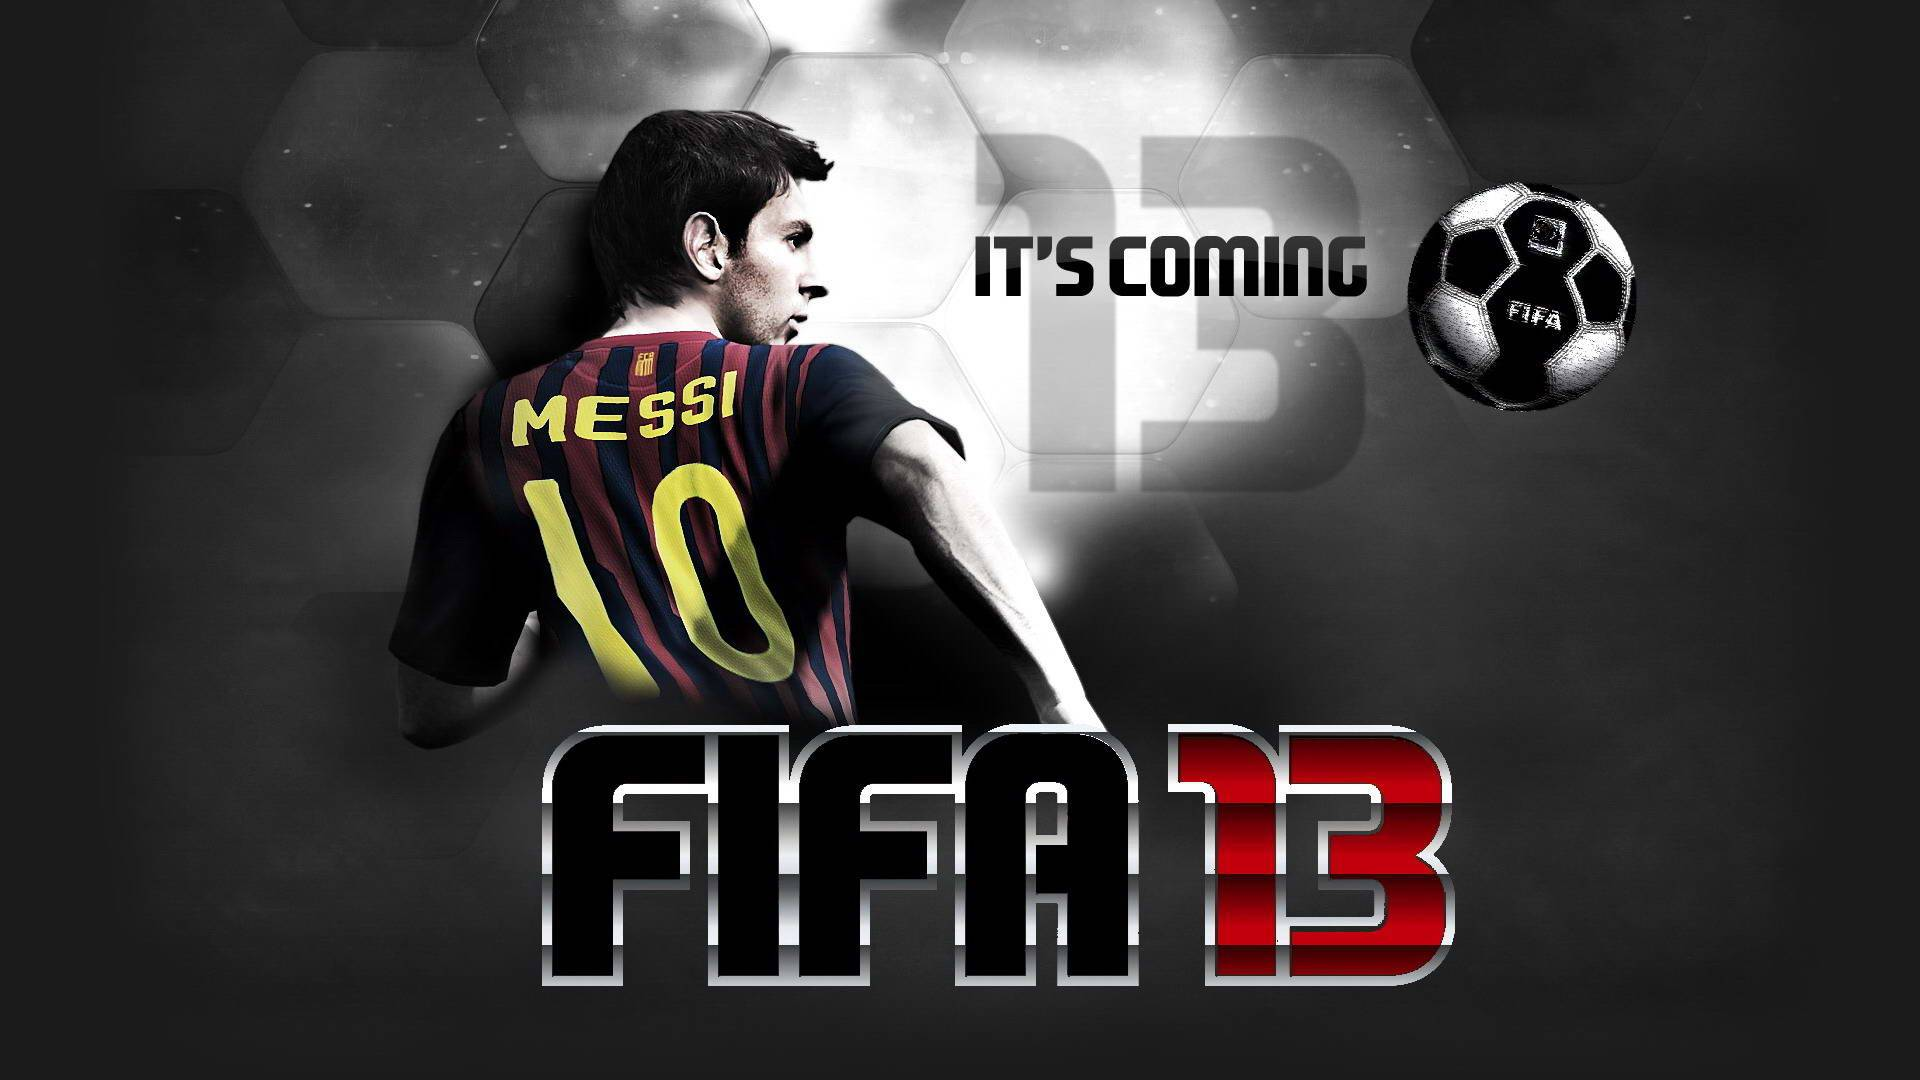 FIFA 13 Wallpapers In HD